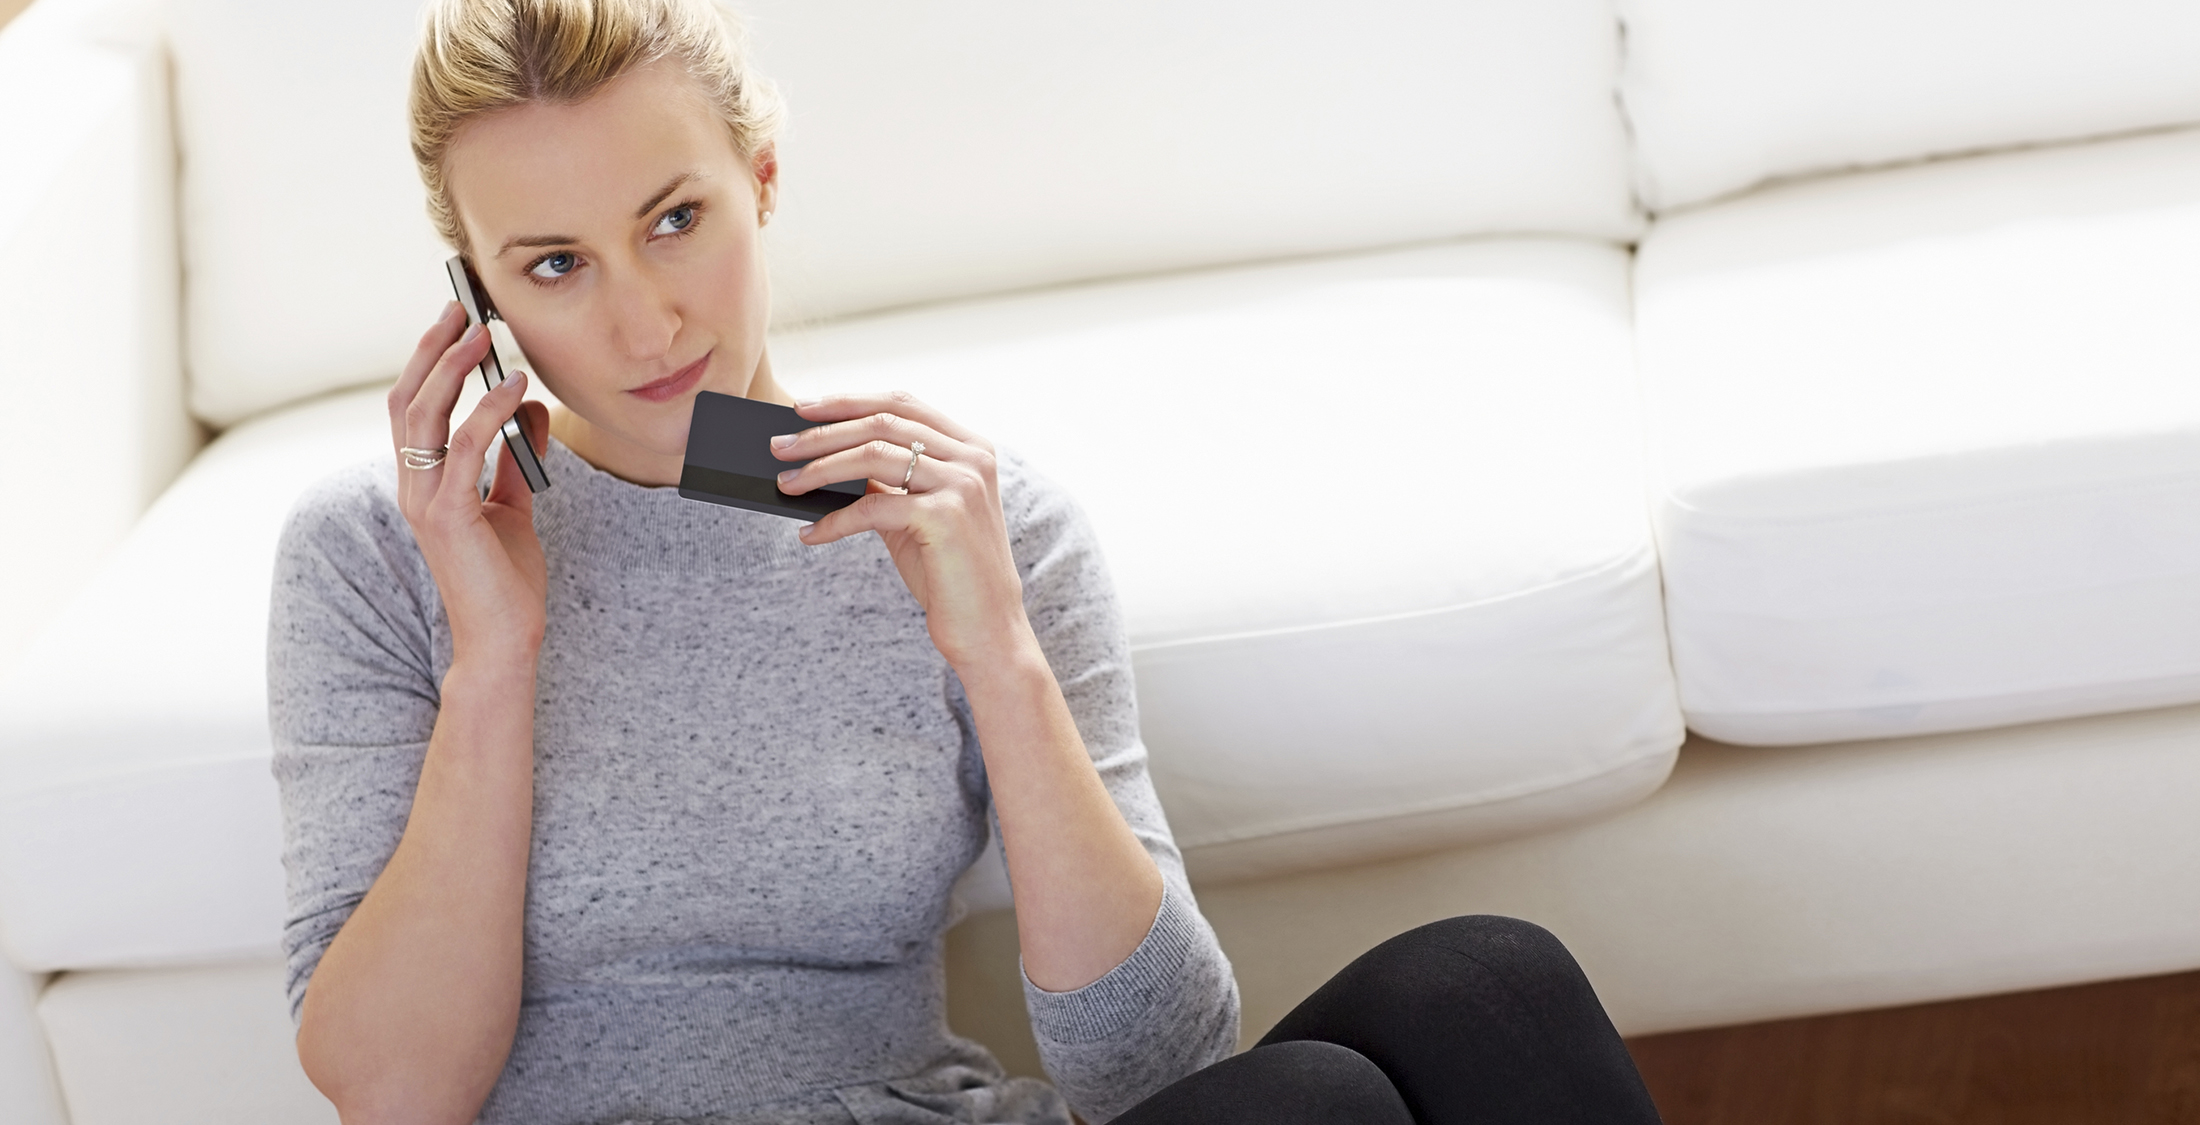 Thoughtful young woman on phone holding credit card at home